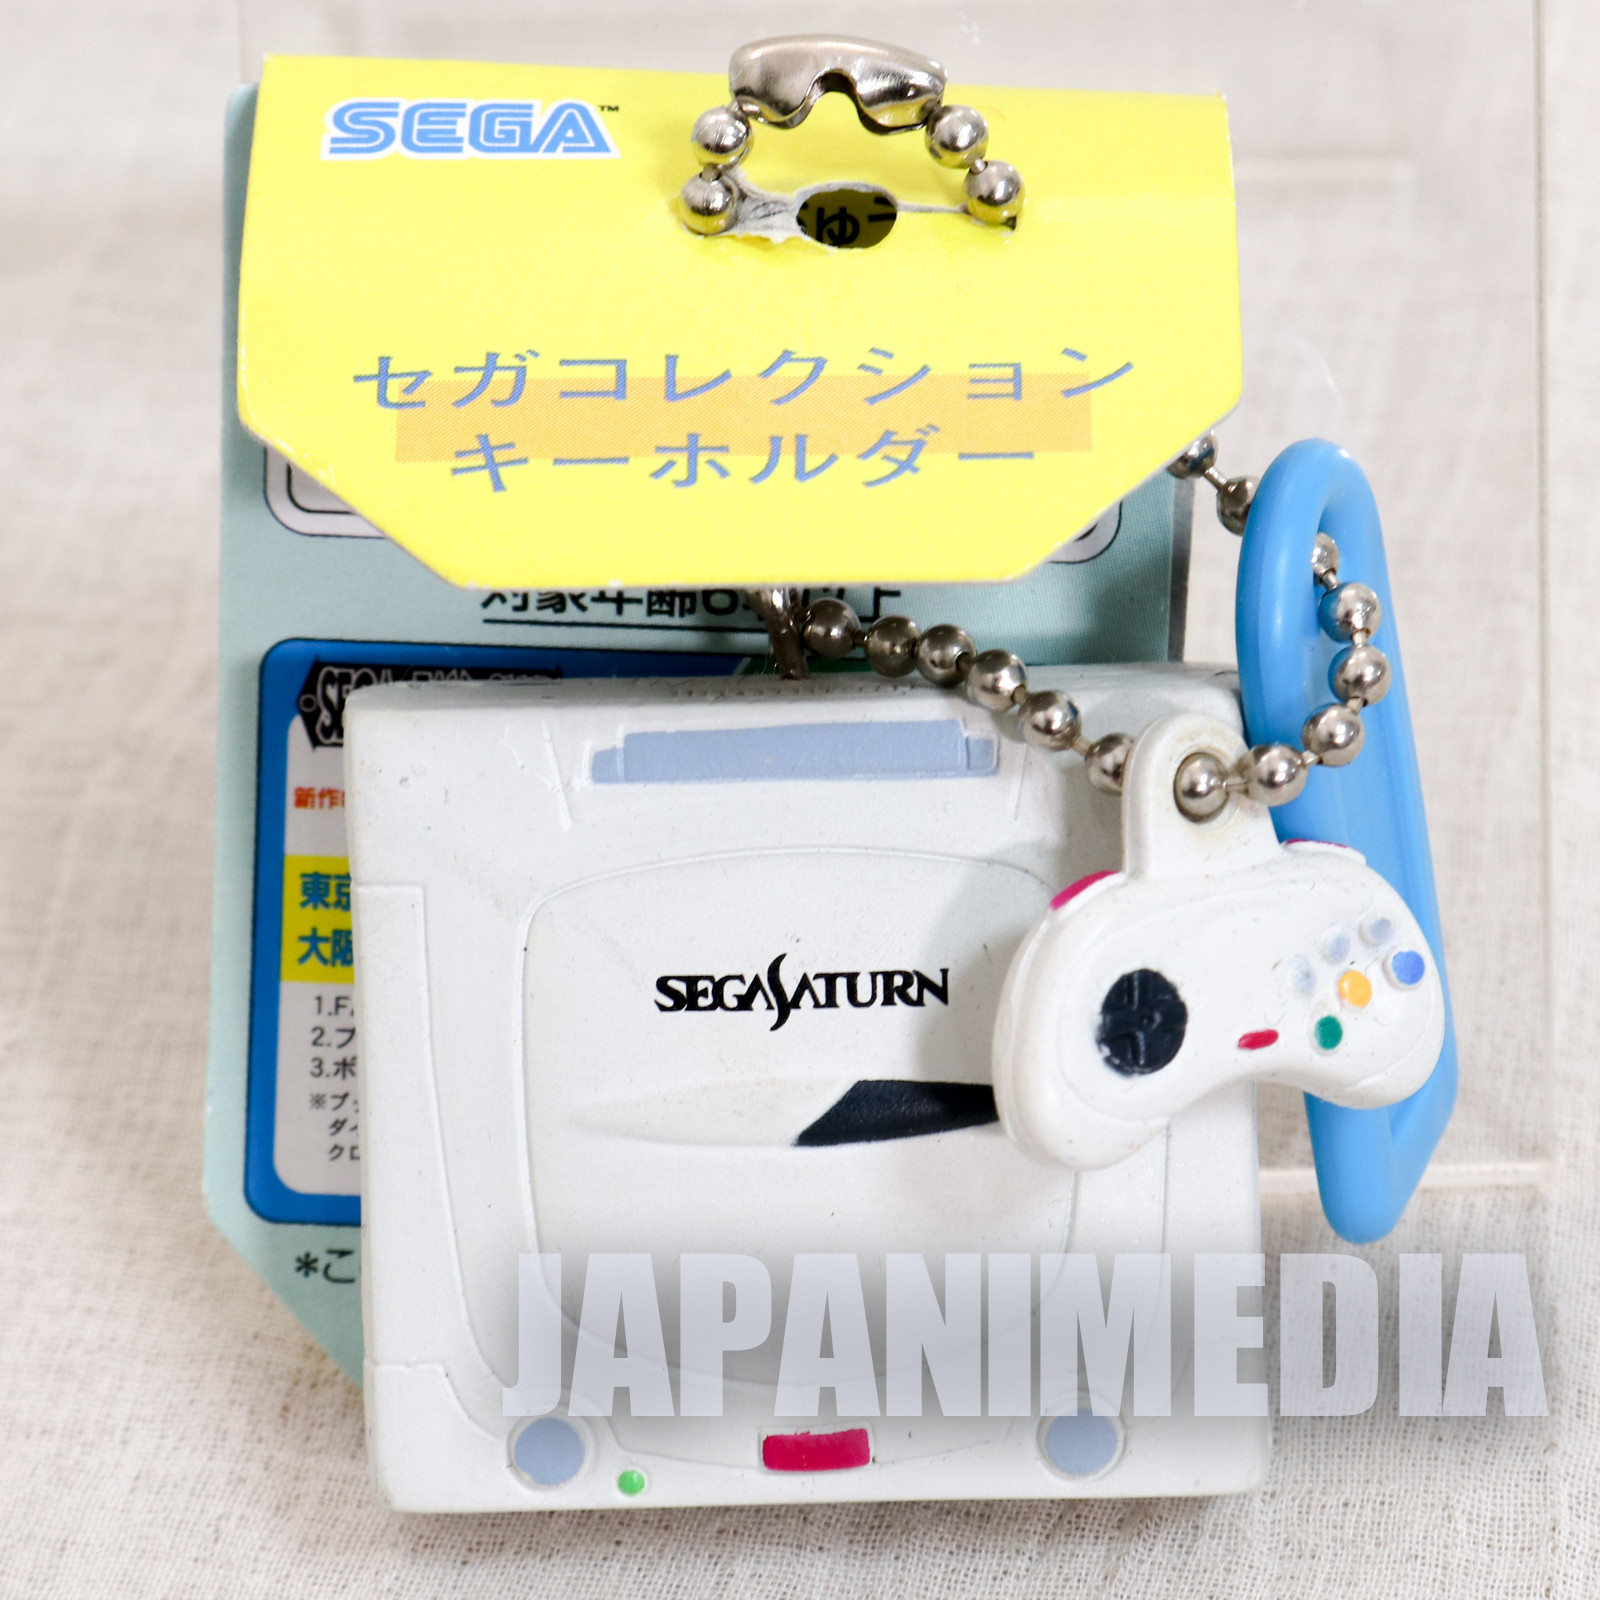 Sega Saturn Game Console Miniature Figure Ballchain JAPAN GAME